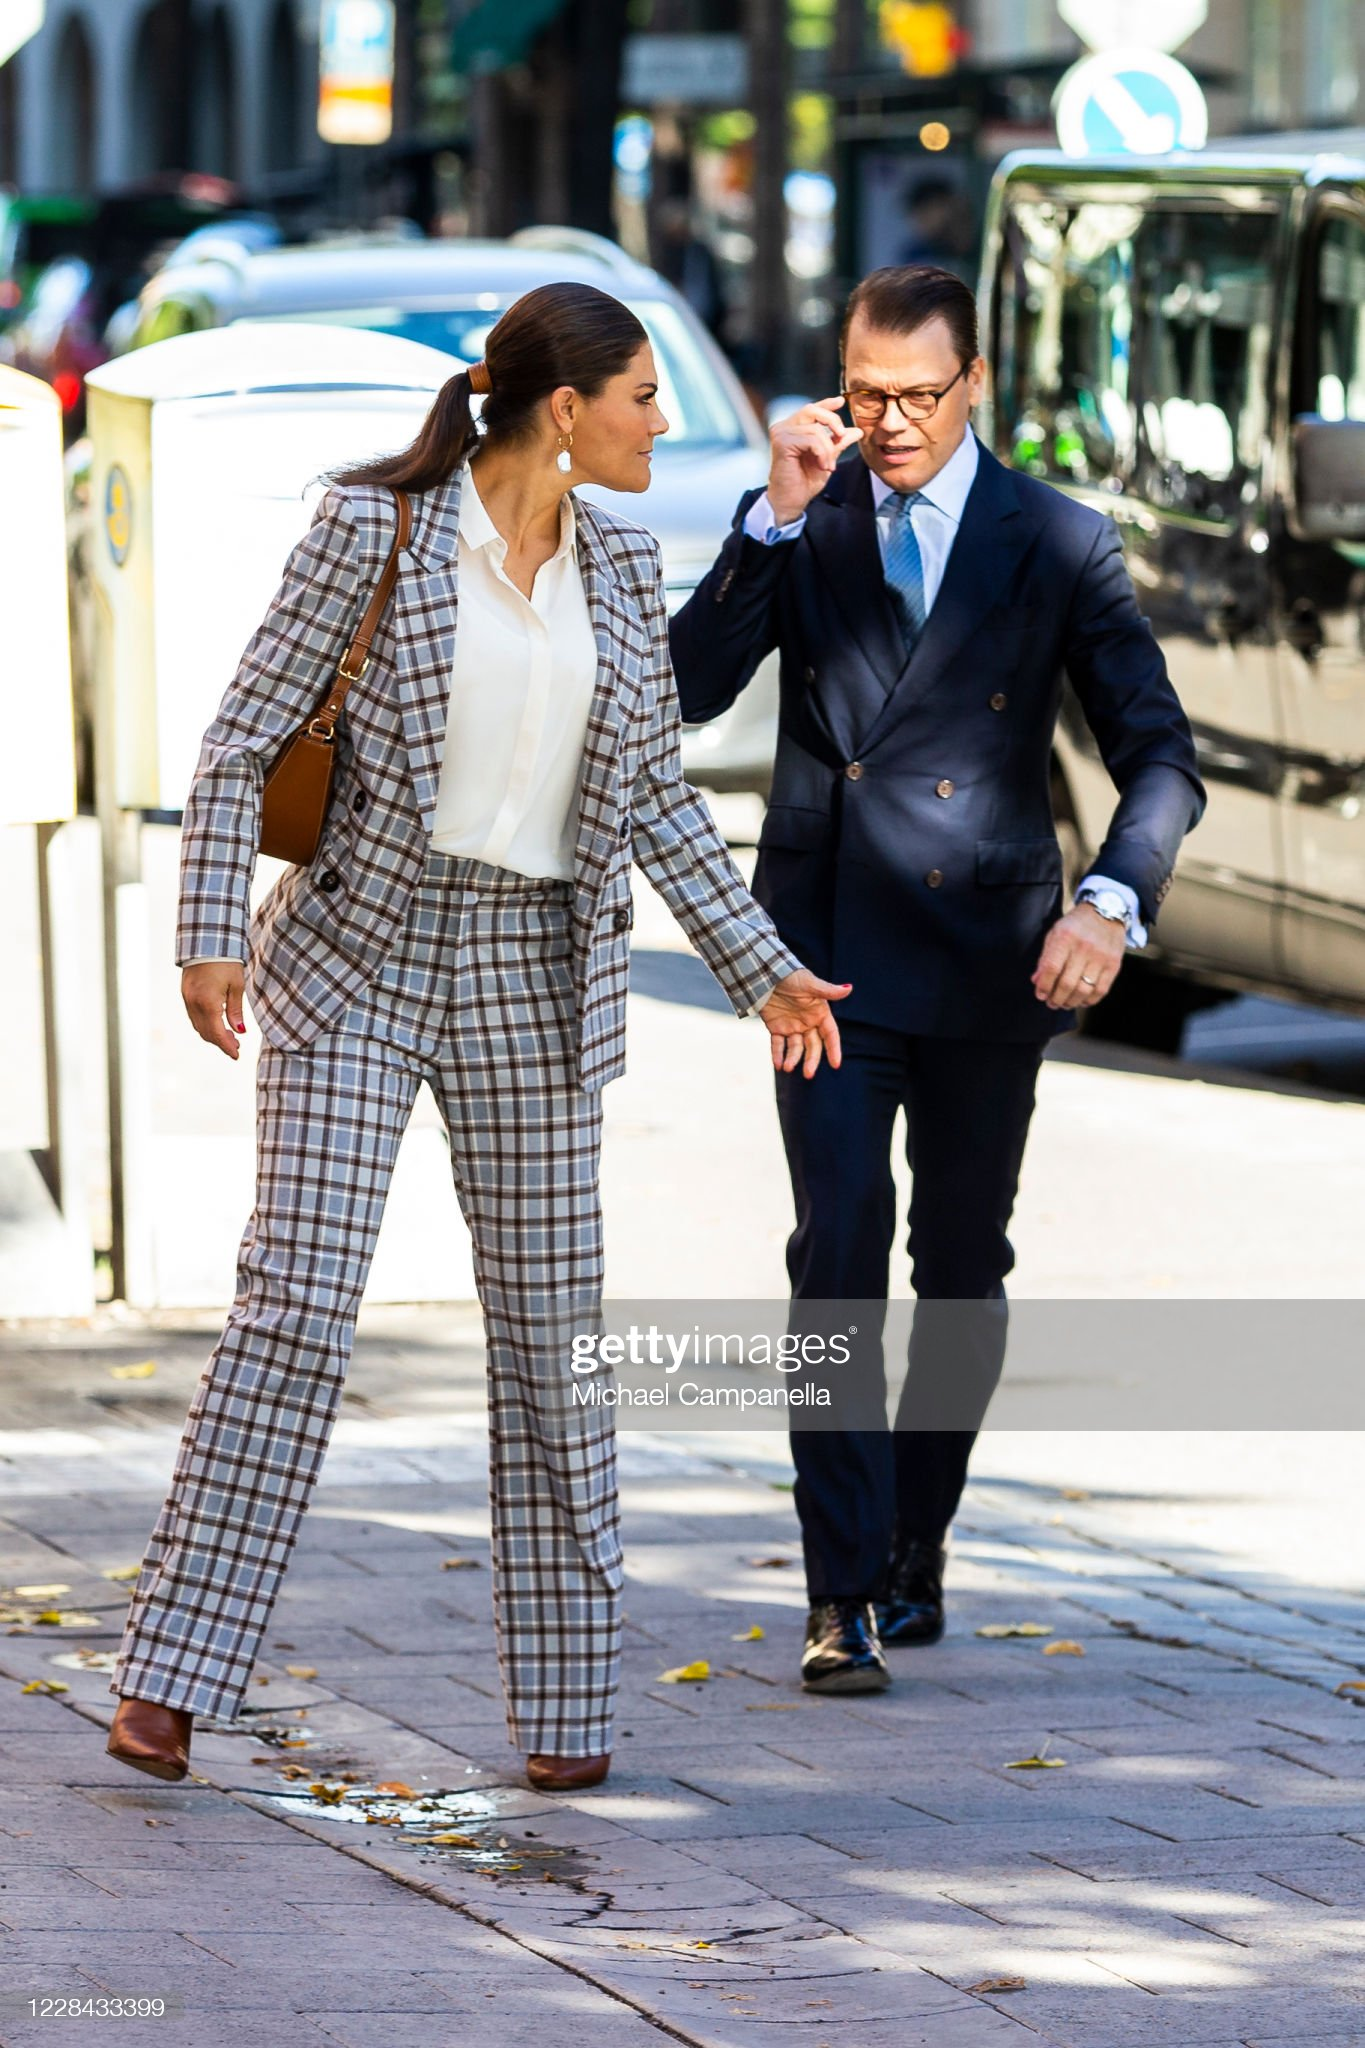 crown-princess-victoria-and-prince-daniel-of-sweden-visit-the-swedish-picture-id1228433399